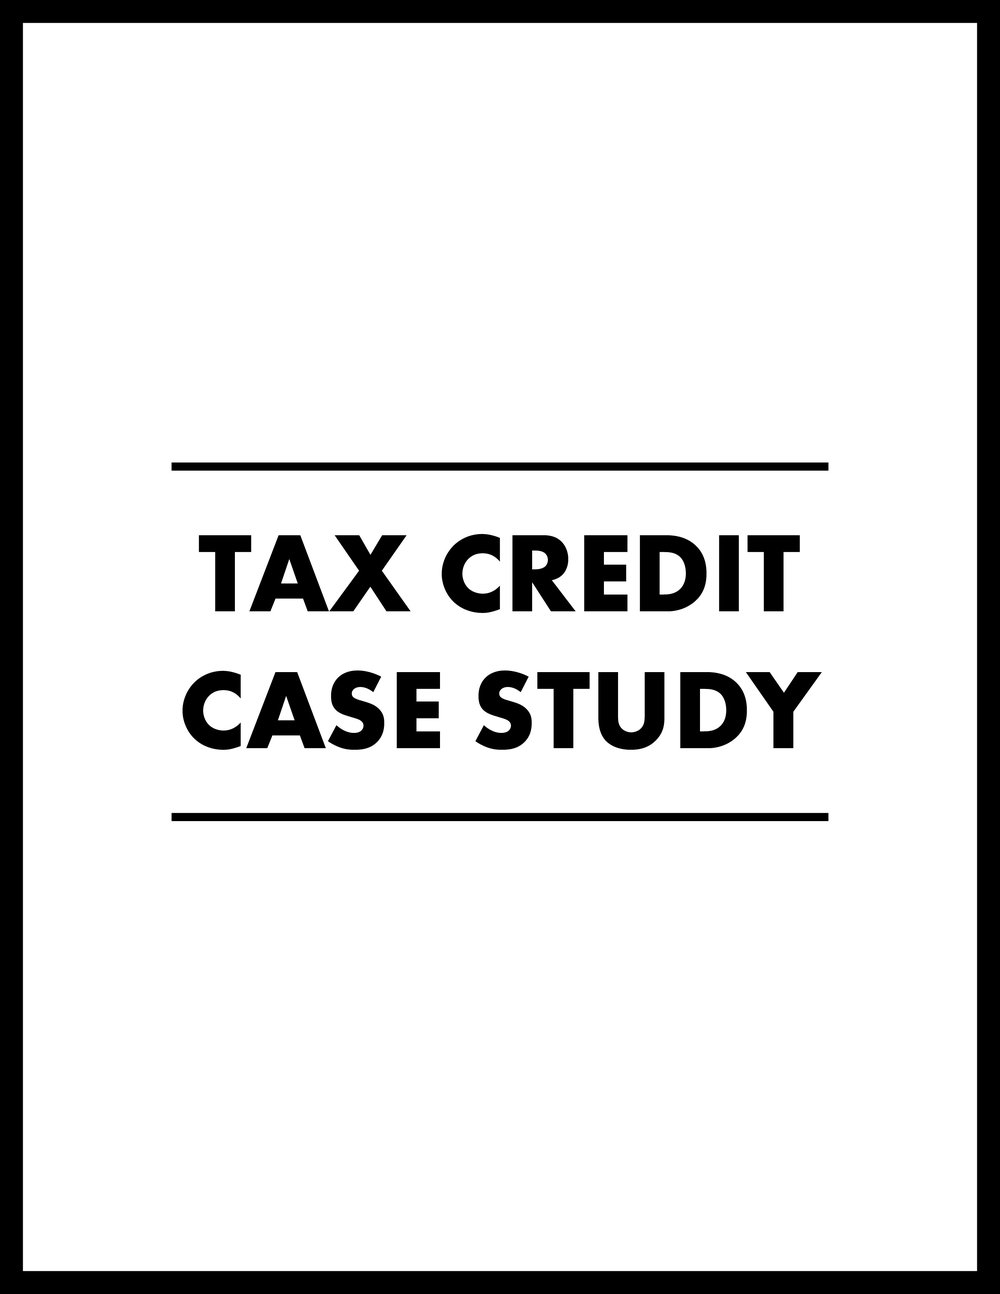 Tax Credit Case Study-01.jpg